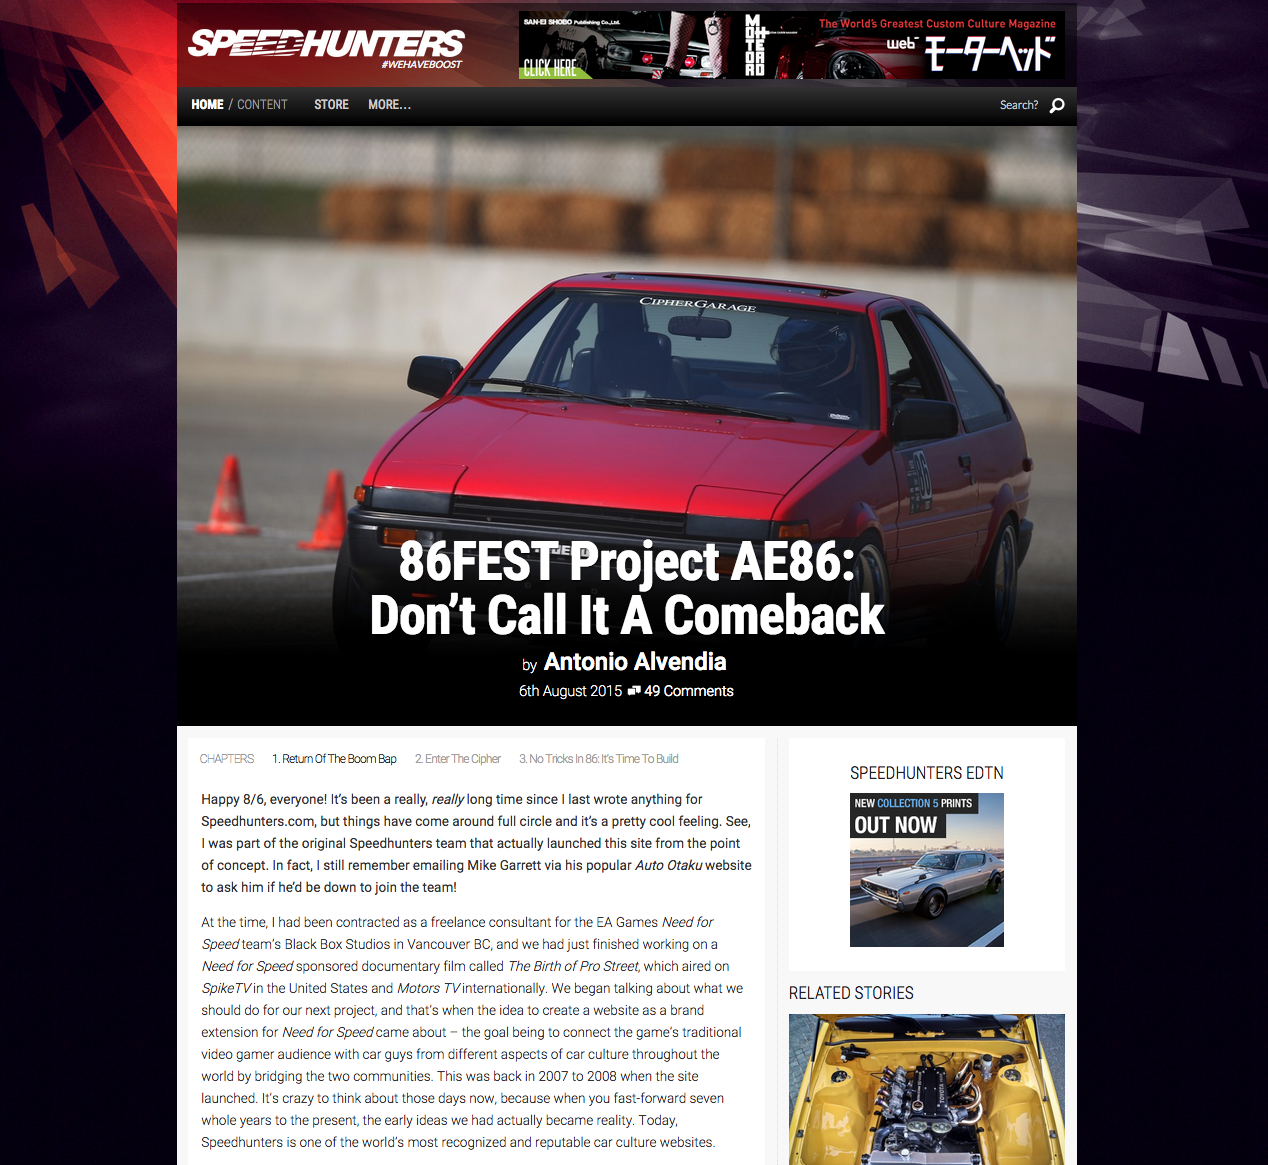 86FEST Project AE86 on Speedhunters